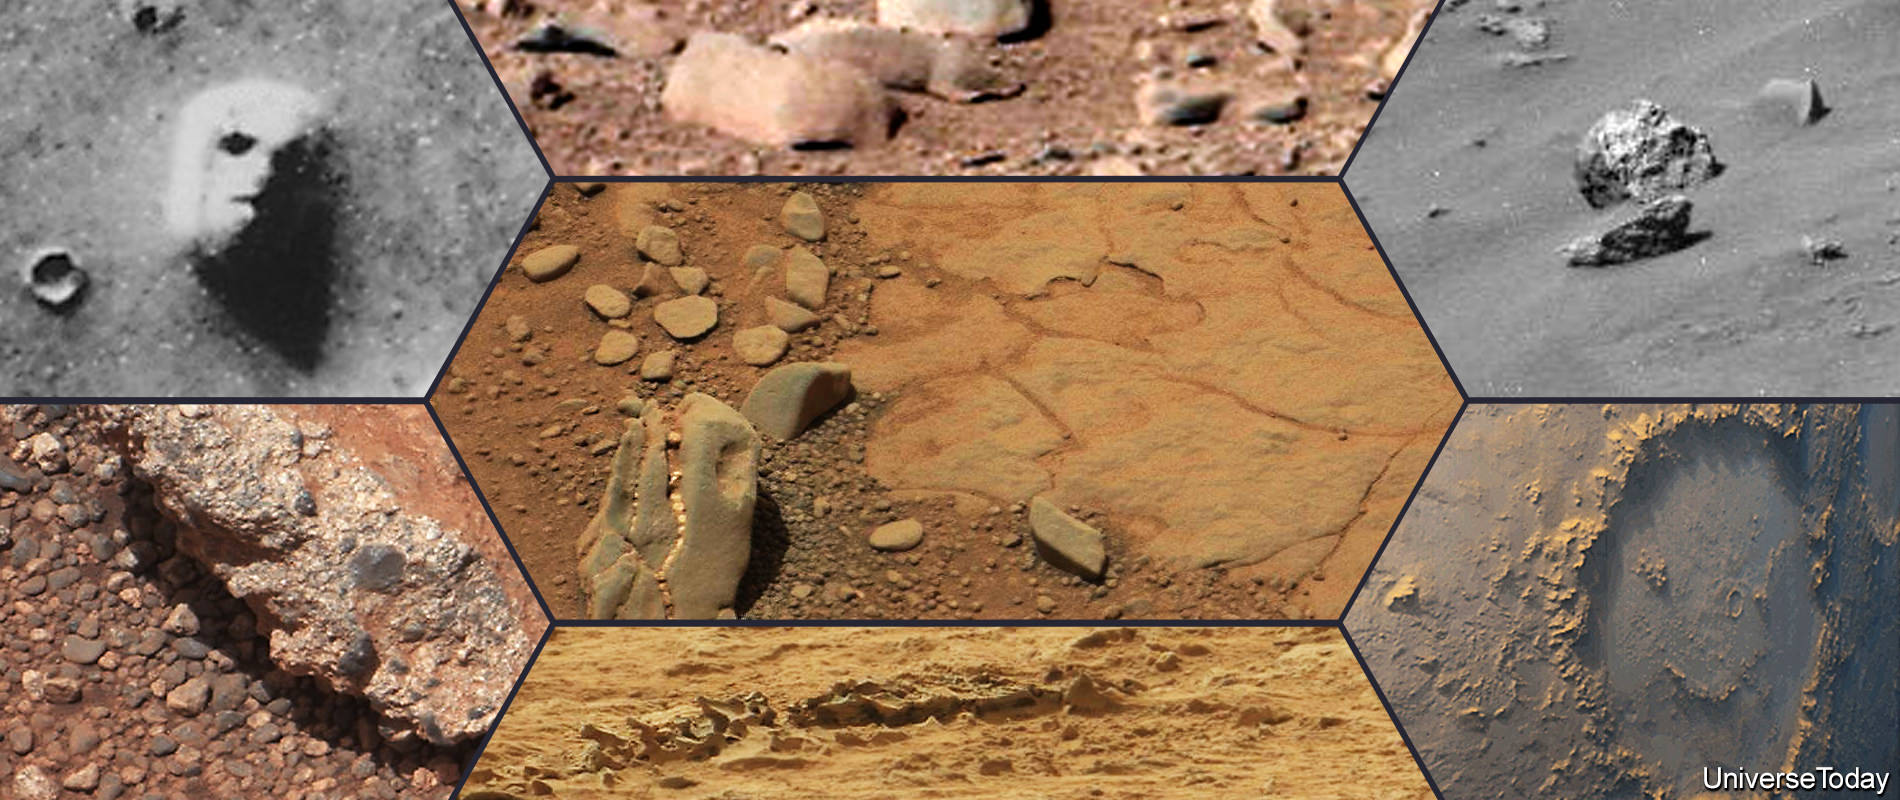 The dinosaur on Mars, the Face in Cydonia, the rat, the human skull, the Smiley face, the prehistoric vertebrae and the conglomerate rock. Something is amiss in this montage and shouldn't be included. (Photo Credits: NASA/JPL)